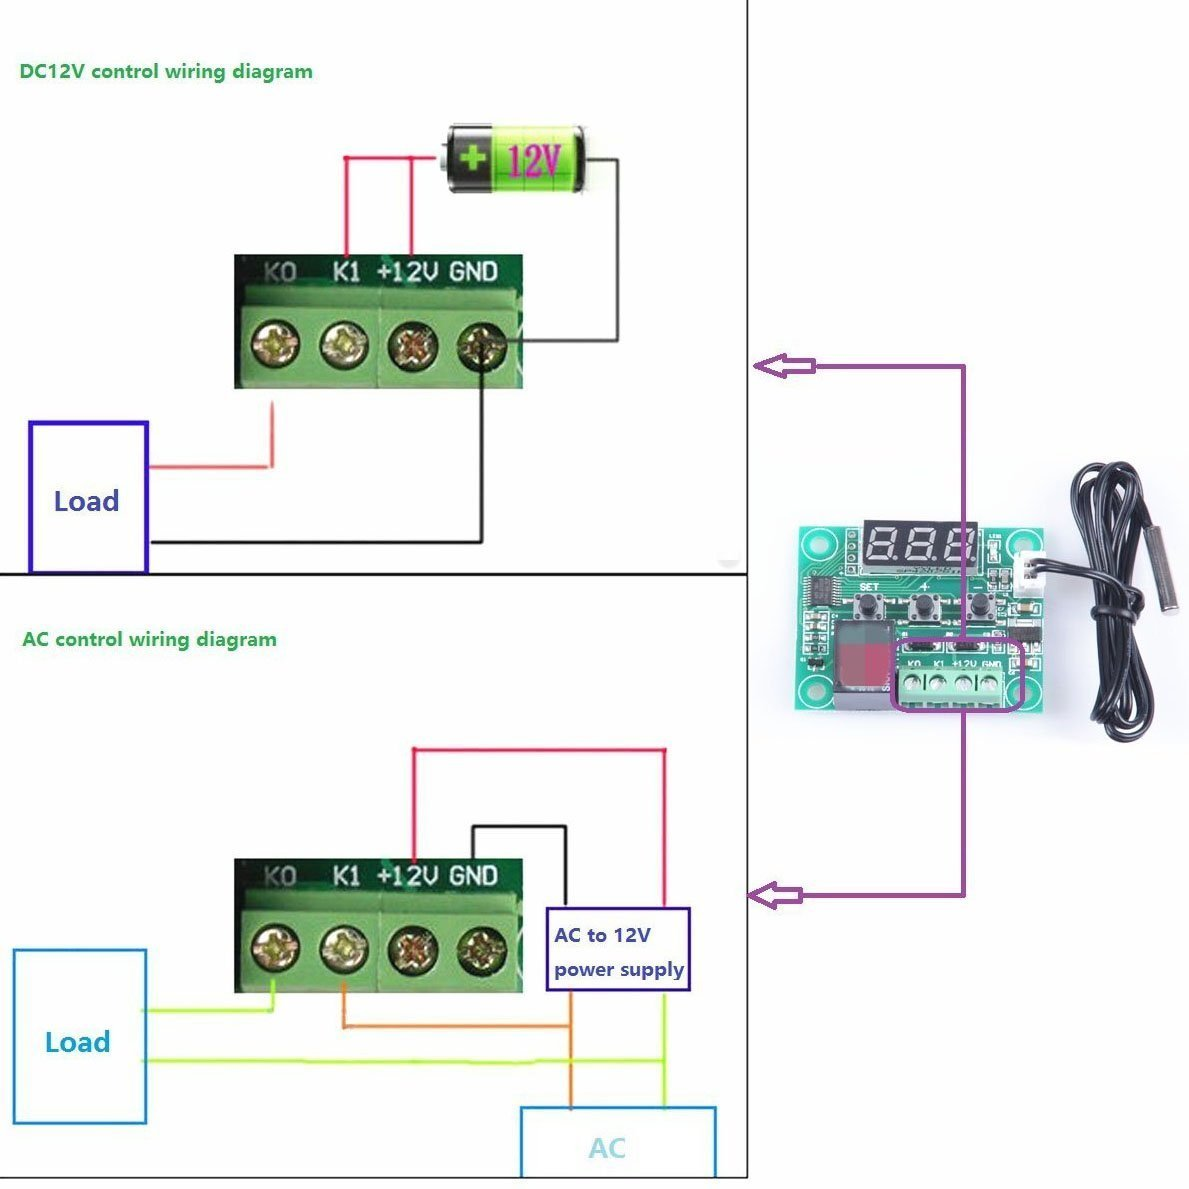 Matee Micro Digital Thermostat Dc12v 50 110c 58f To 230f On Stc 1000 Wiring I Wired My Device According This Diagram Temperature Controller Board Electronic Control Module Switch Sensor